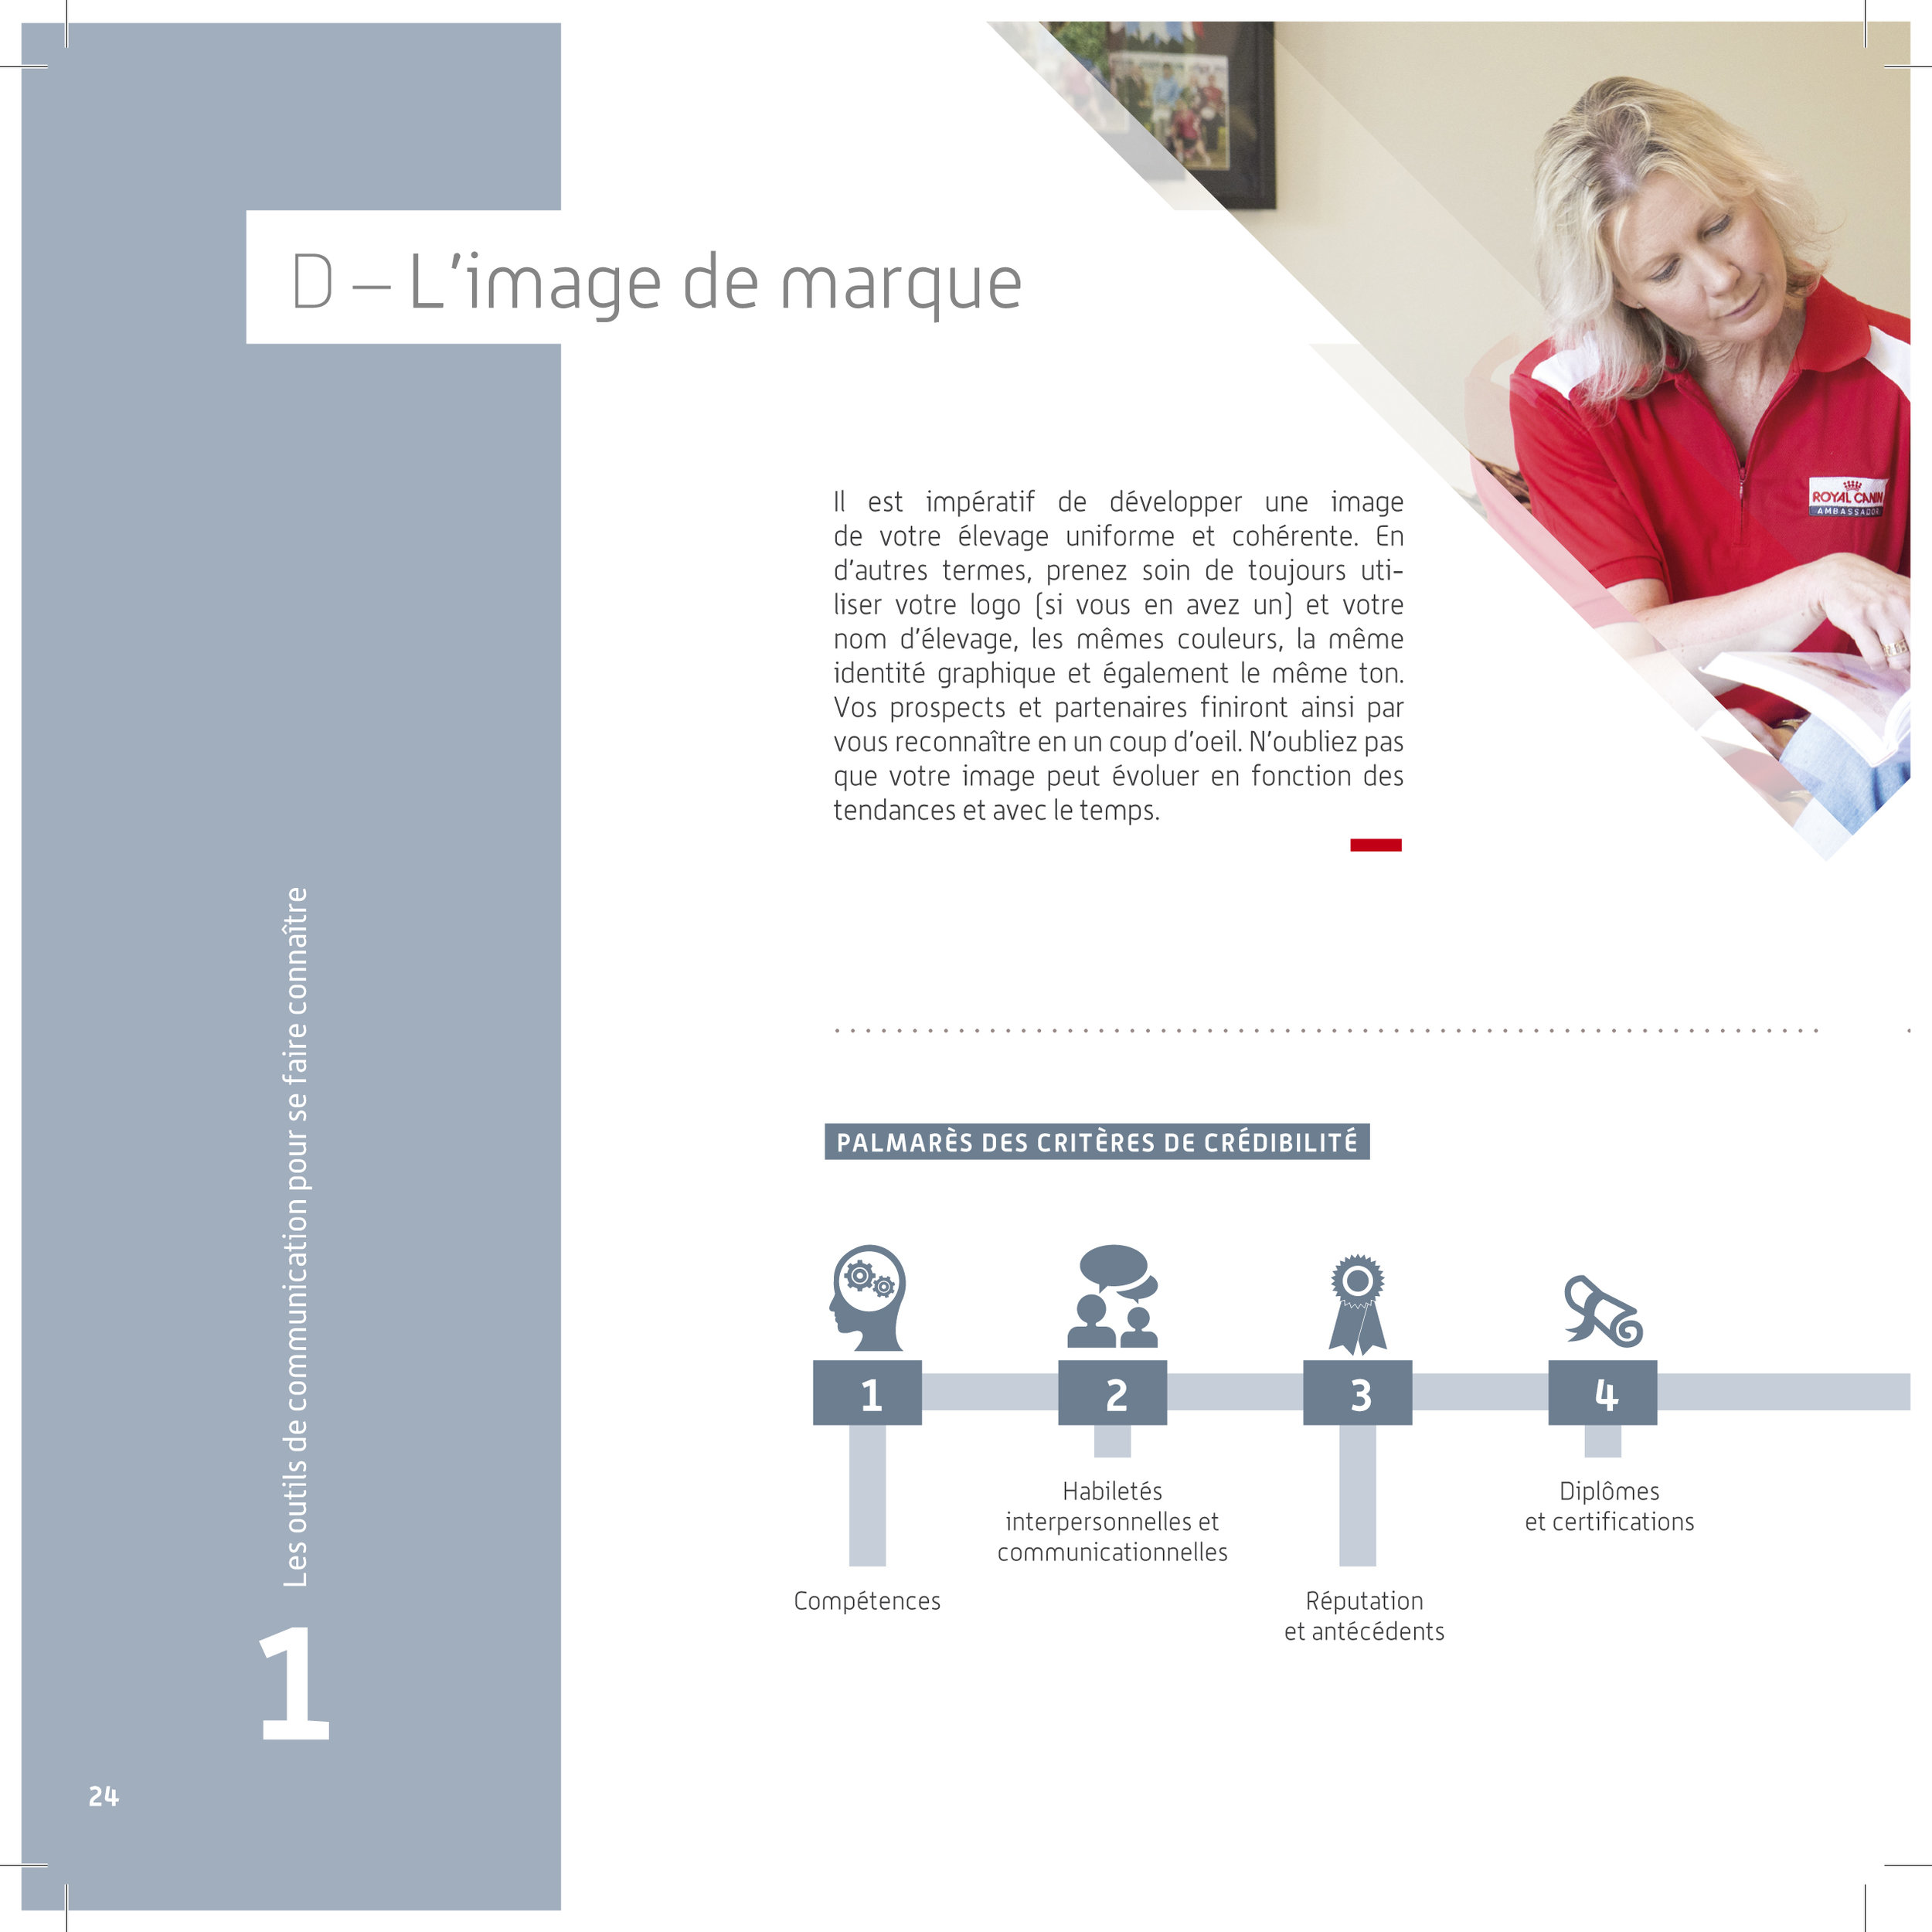 guide-marketing-elevage_2016_fr_hd-24.jpg